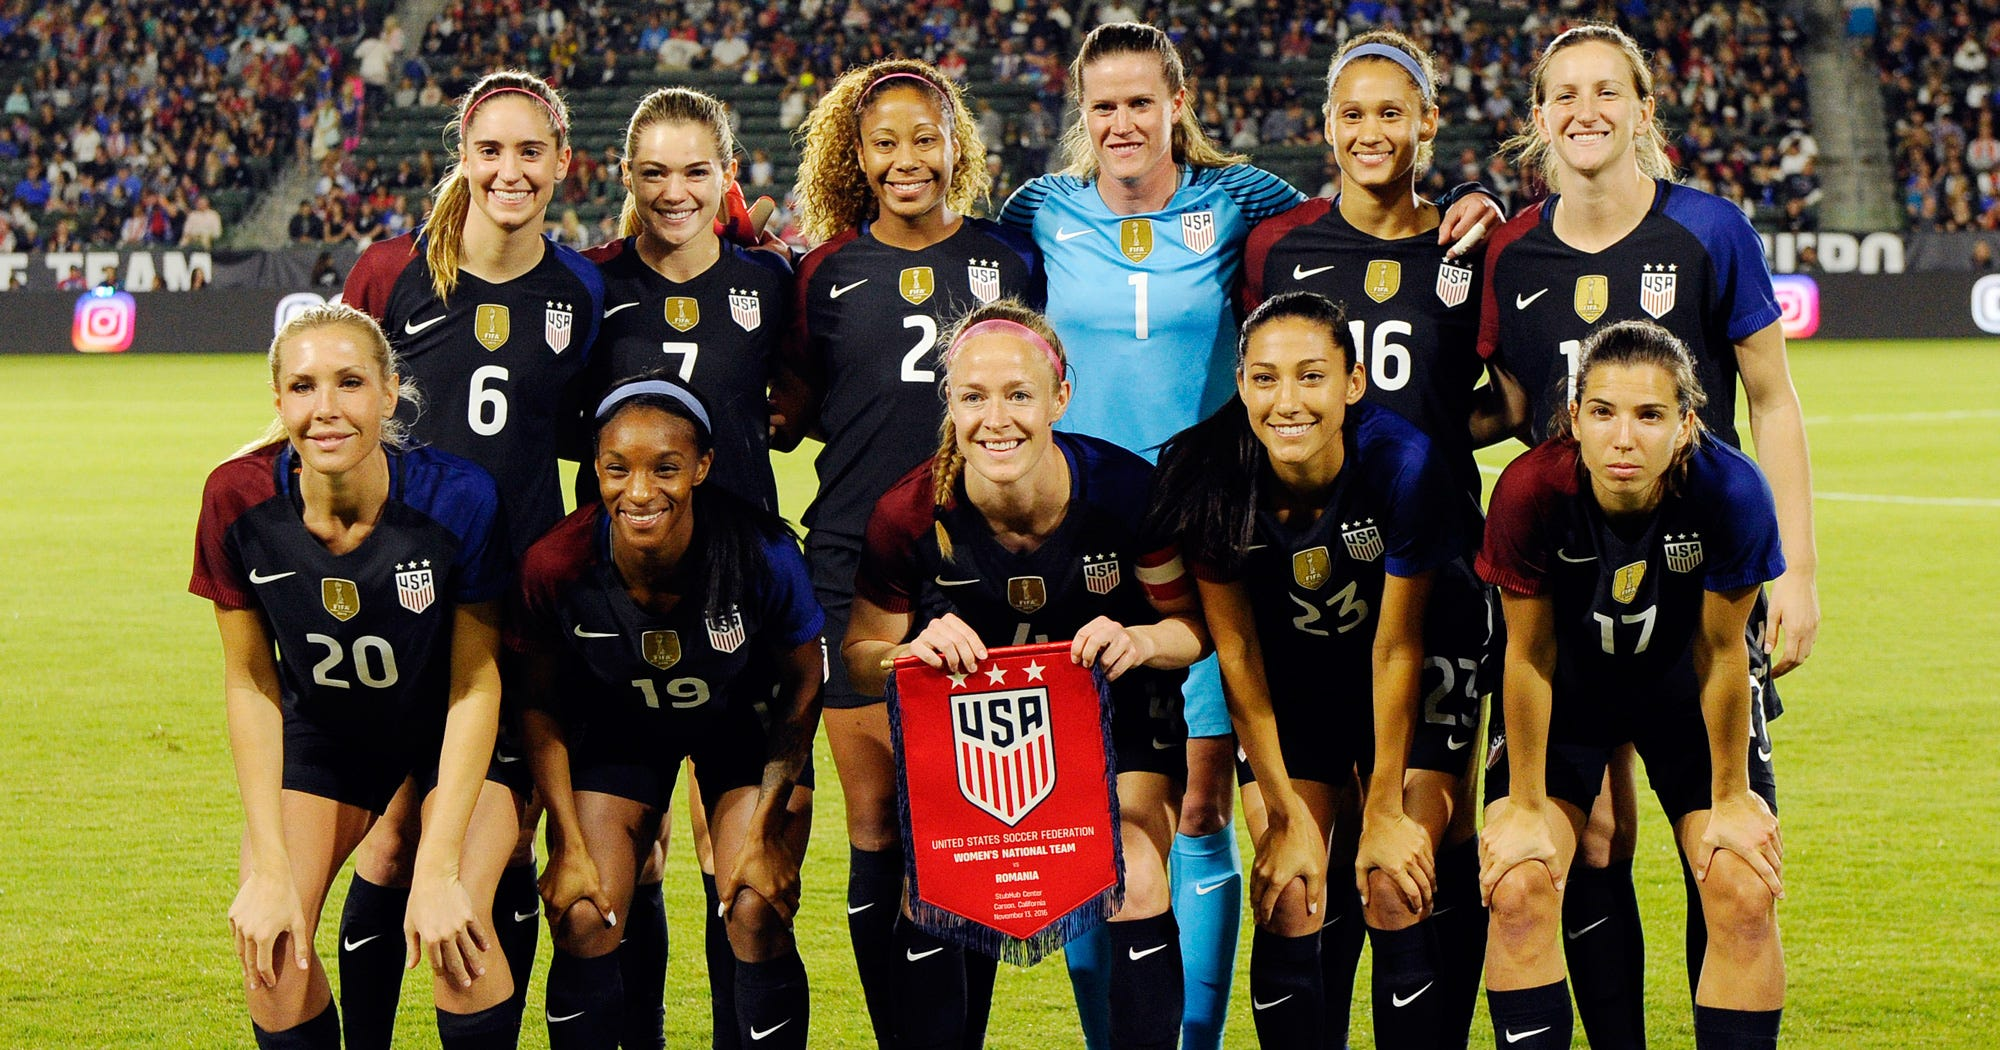 """Women's National Soccer Team Players Say They're Treated Like """"Second-Class Citizens"""""""